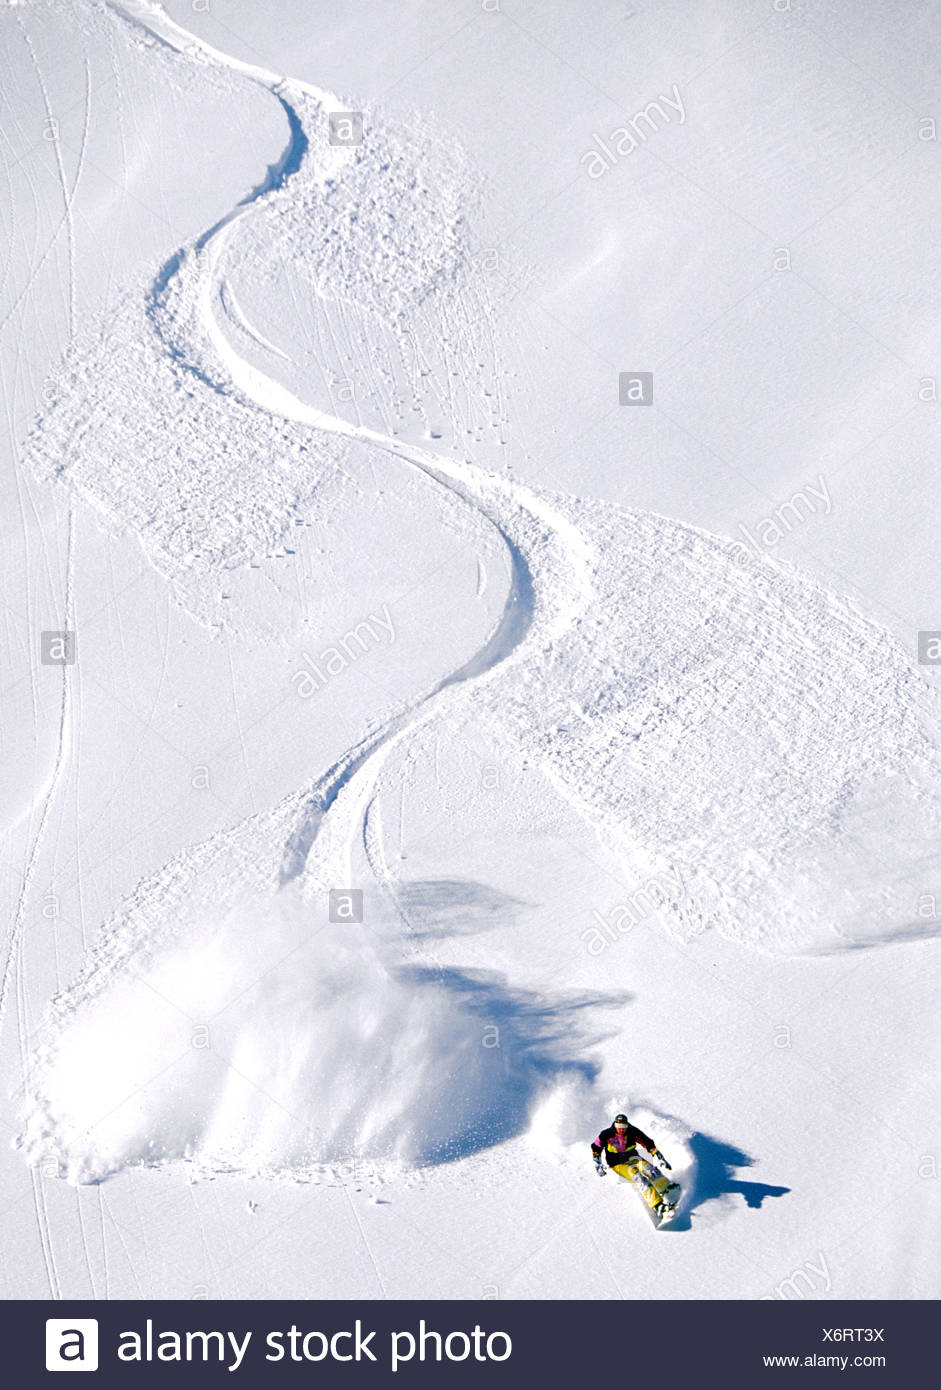 Aerial view of winding trail, snowboarding, Gary Chalmers, Flaine, France Stock Photo